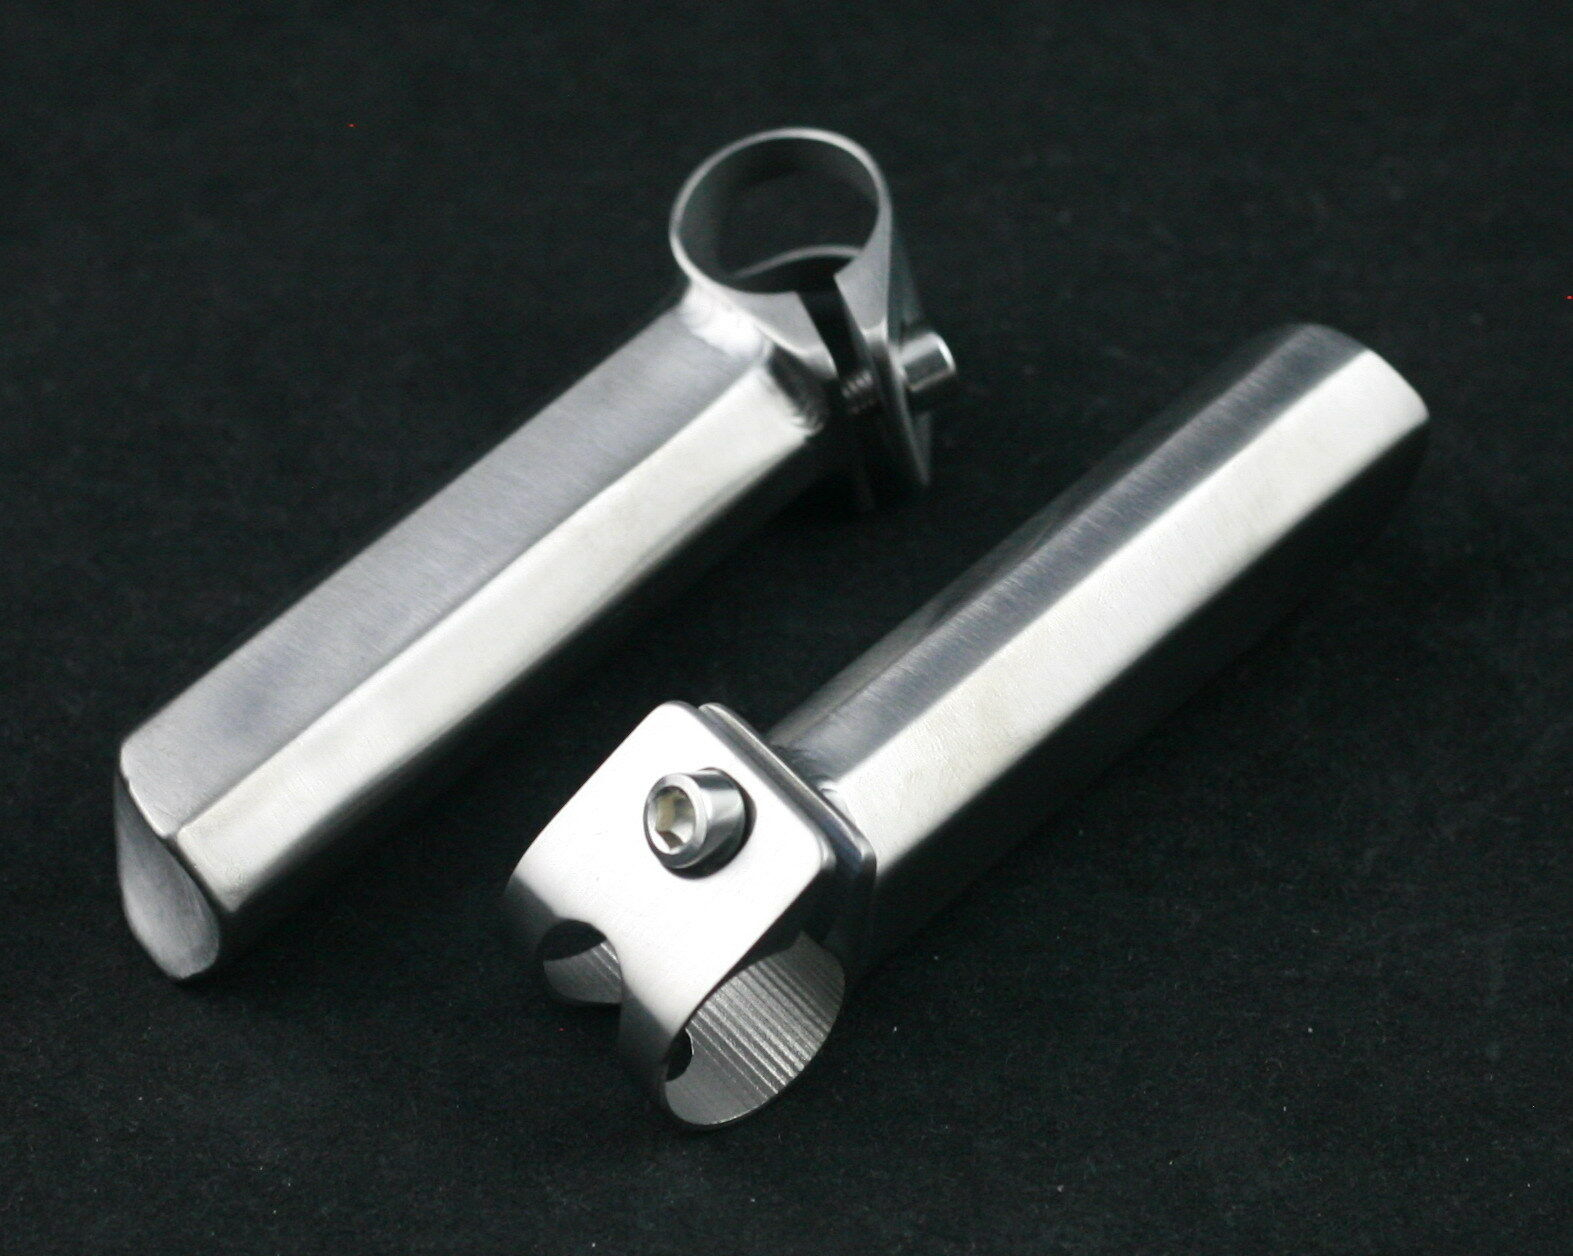 J&L Titanium Bar ends Mountain bike Handle-51g2-120mm